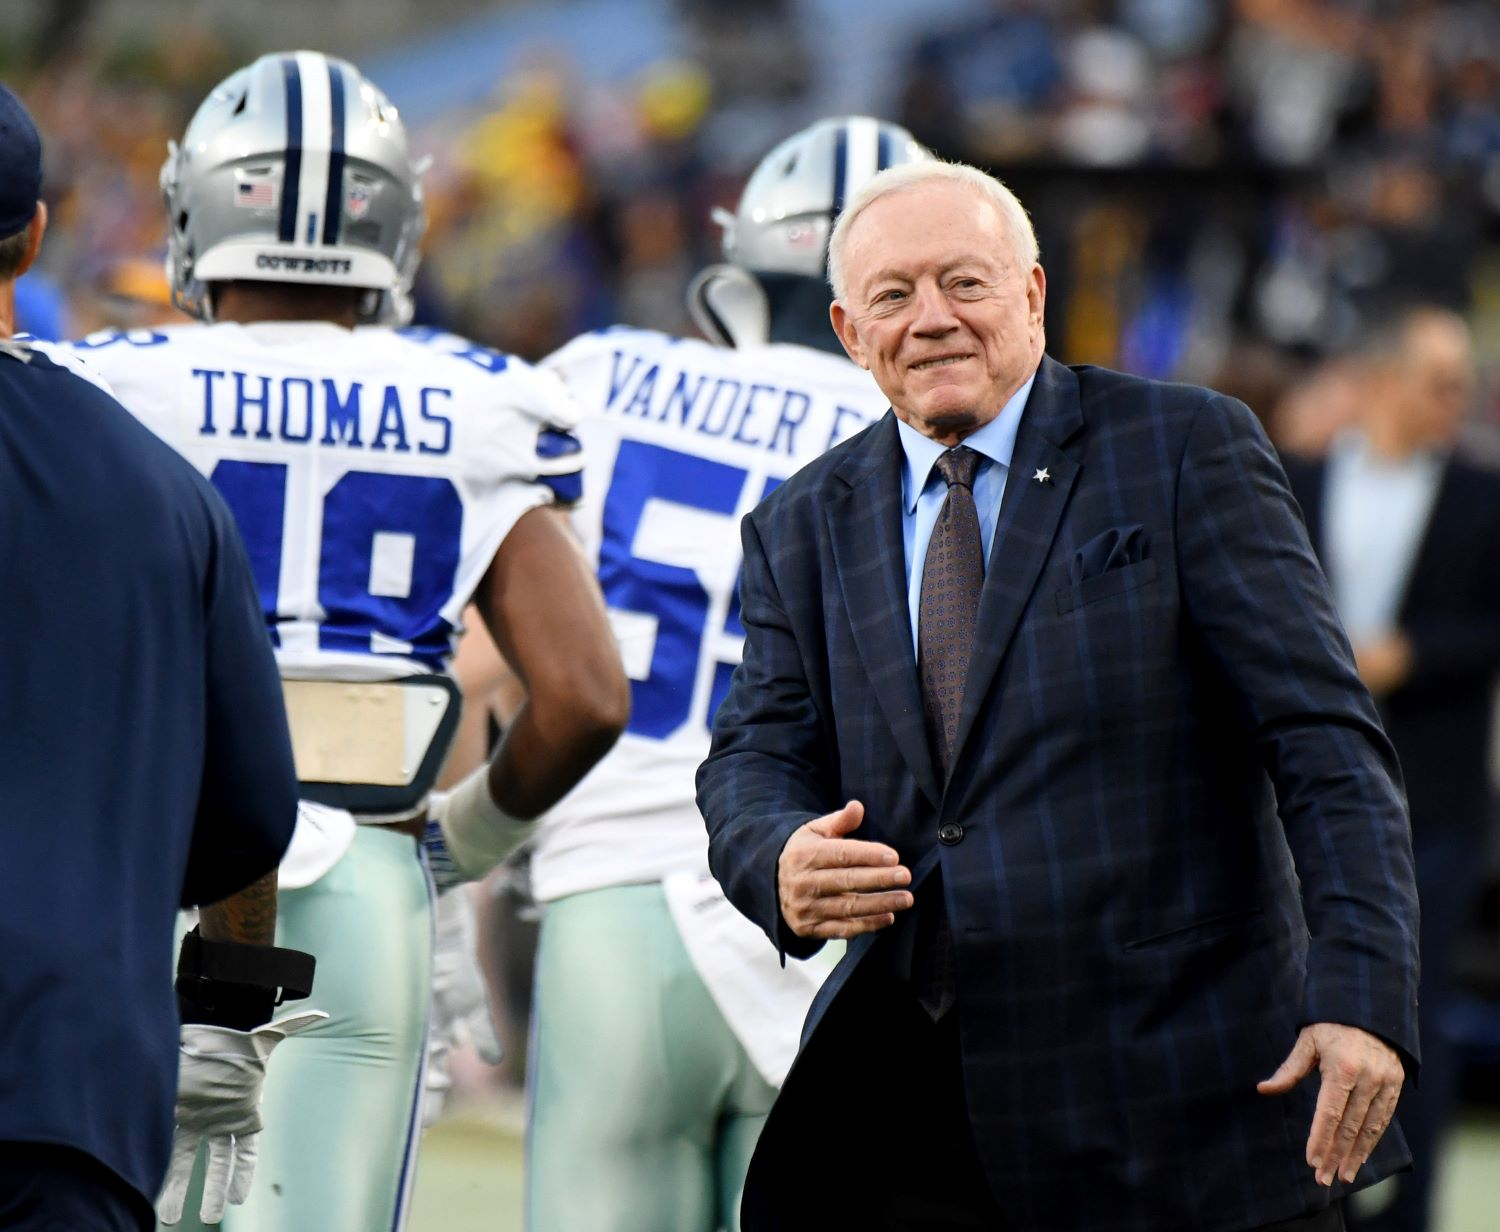 Jerry Jones just sent a strong message about Andy Dalton, who will be tasked with leading the Cowboys in the wake of Dak Prescott's season-ending ankle injury.